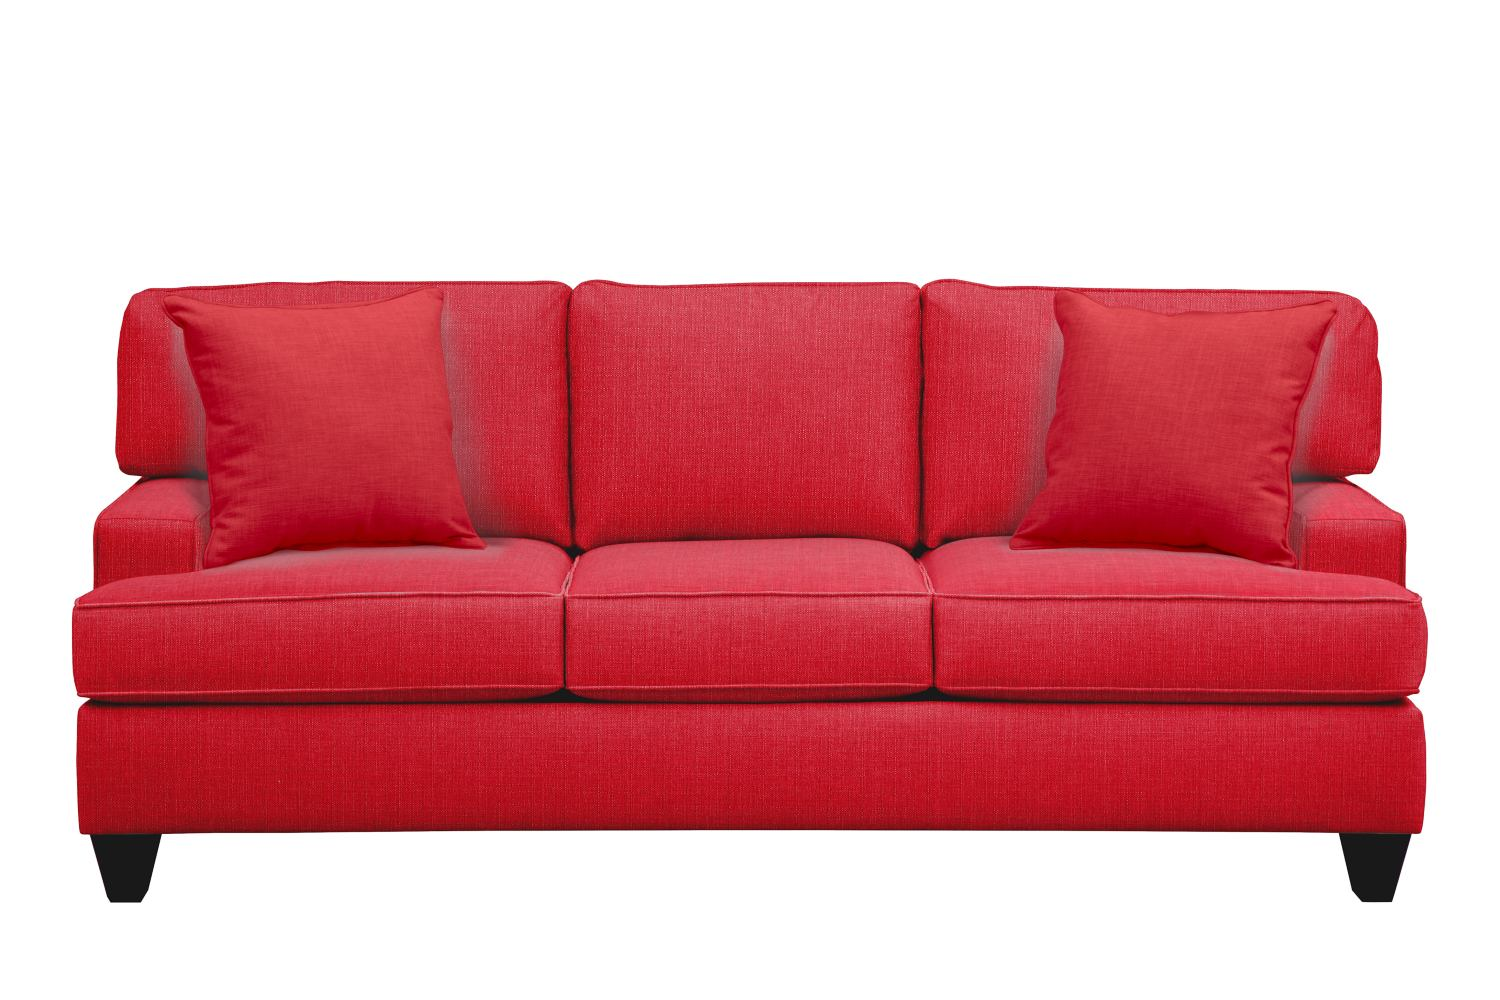 "Living Room Furniture - Conner Track Arm Sofa 87"" Depalma Cherry w/ Depalma Cherry Pillow"